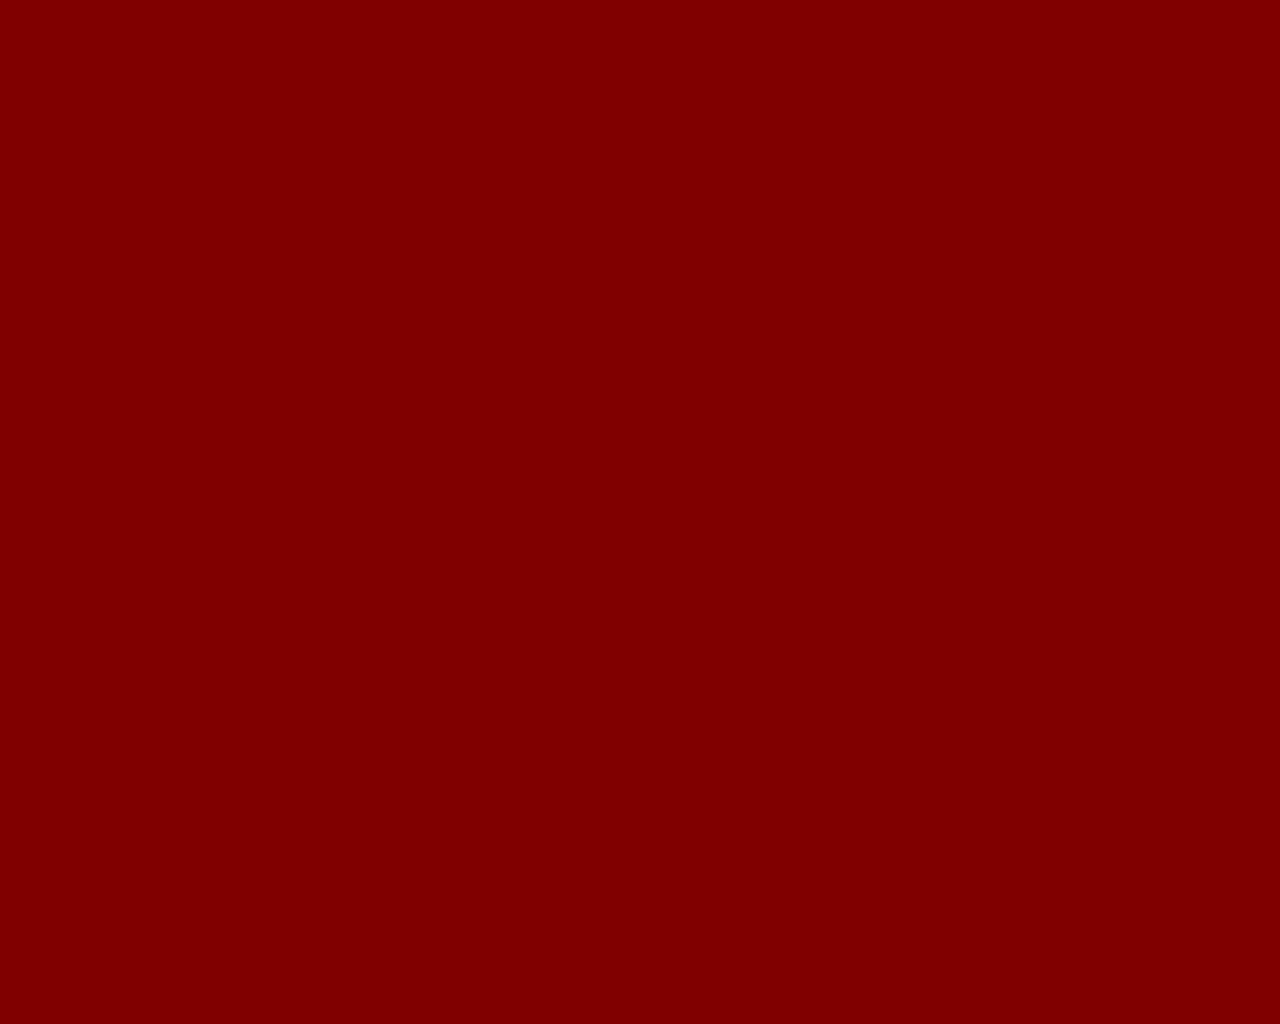 1280x1024 Maroon Web Solid Color Background